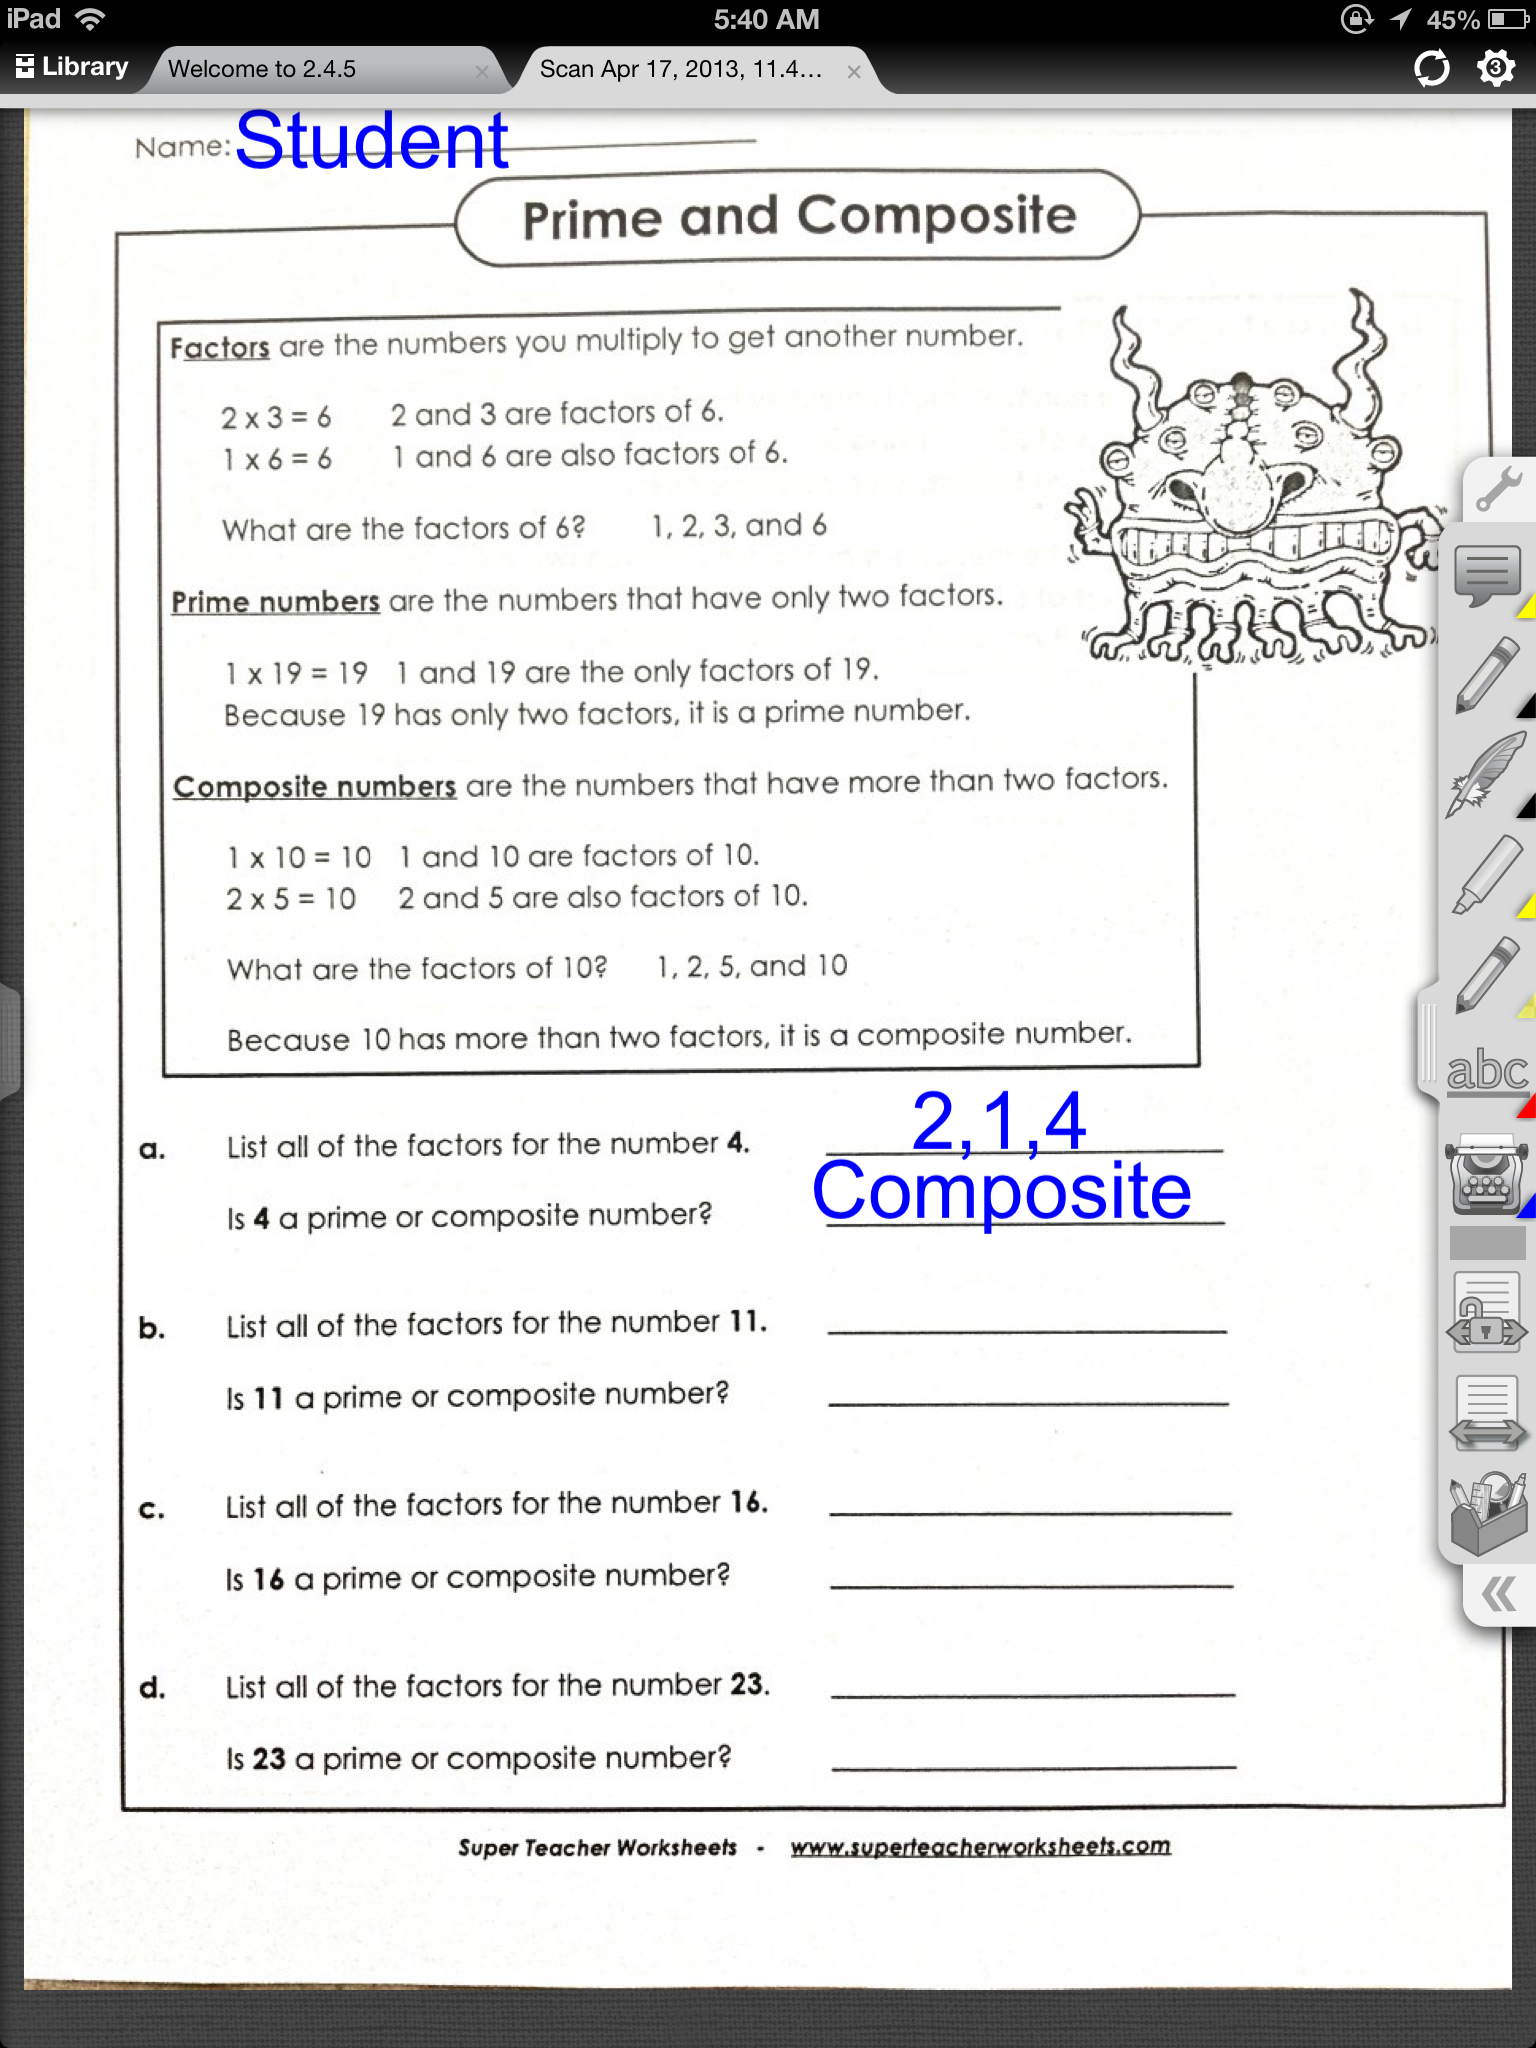 Worksheets Dysgraphia Worksheets iannotate app on sale for teacher appreciation week ots with pic1